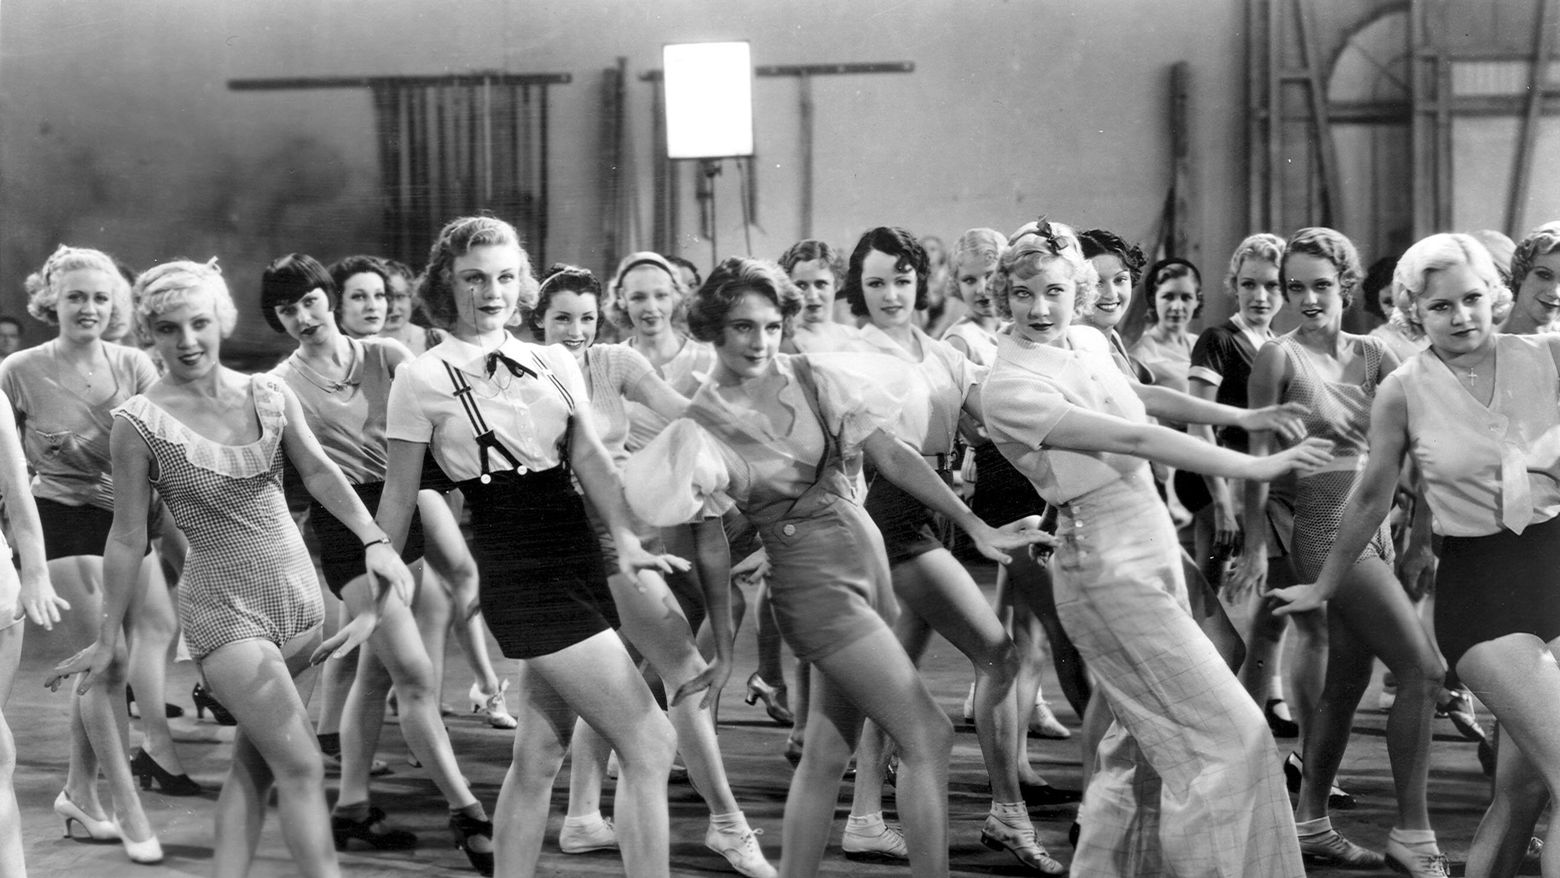 Ginger Rogers, Ruby Keeler, and Una Merkel in a scene from 42nd Street (1933).